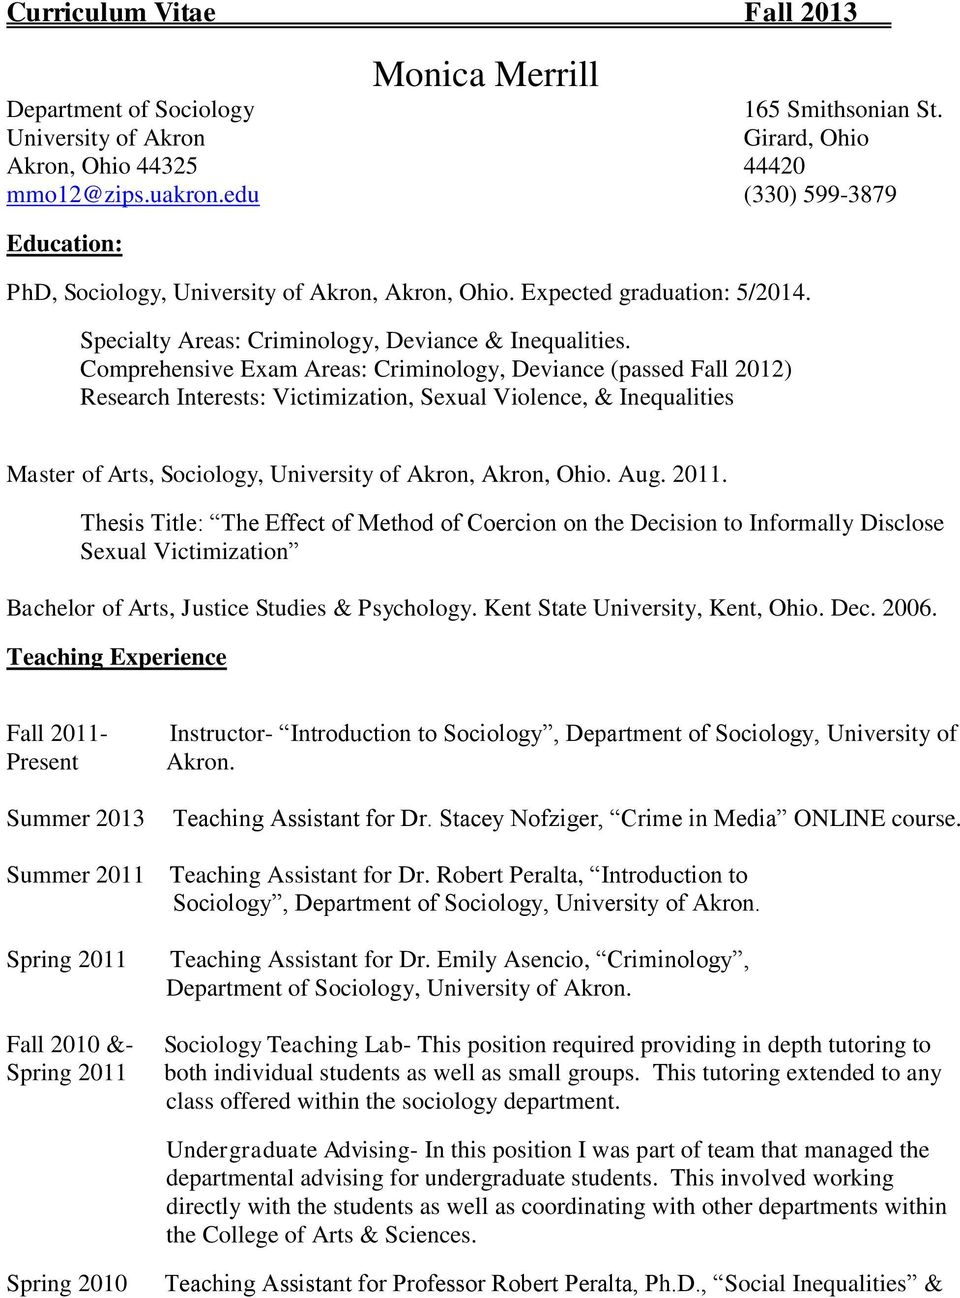 Comprehensive Exam Areas: Criminology, Deviance (passed Fall 2012) Research Interests: Victimization, Sexual Violence, & Inequalities Master of Arts, Sociology, University of Akron, Akron, Ohio. Aug.